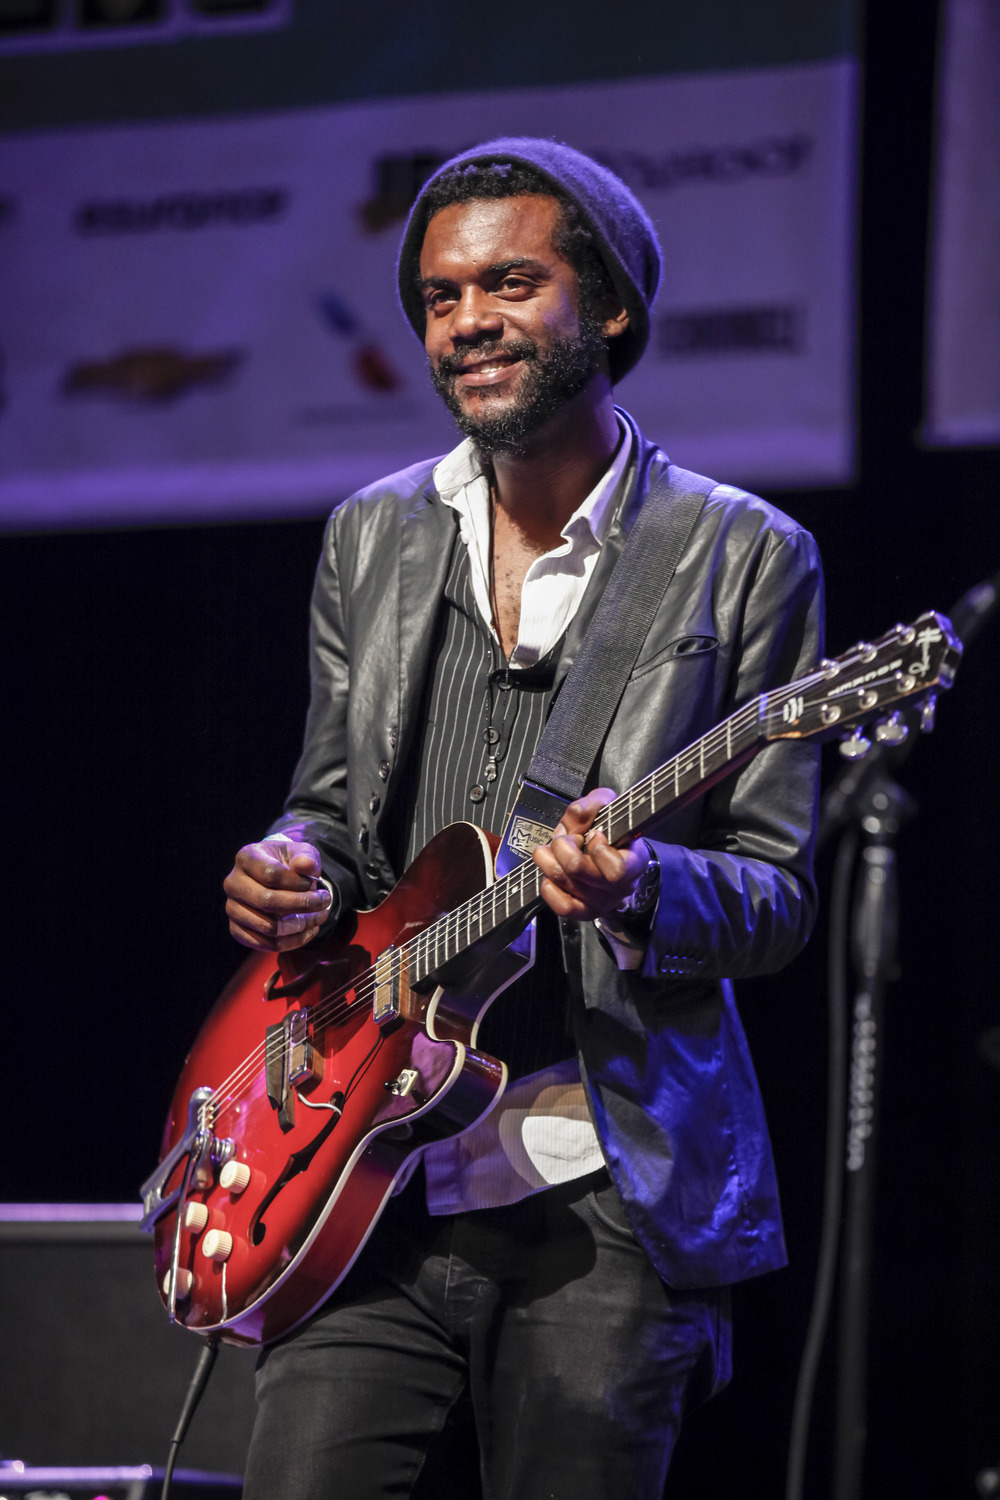 _MG_4632 Gary Clark Jr SM edit (1).jpg